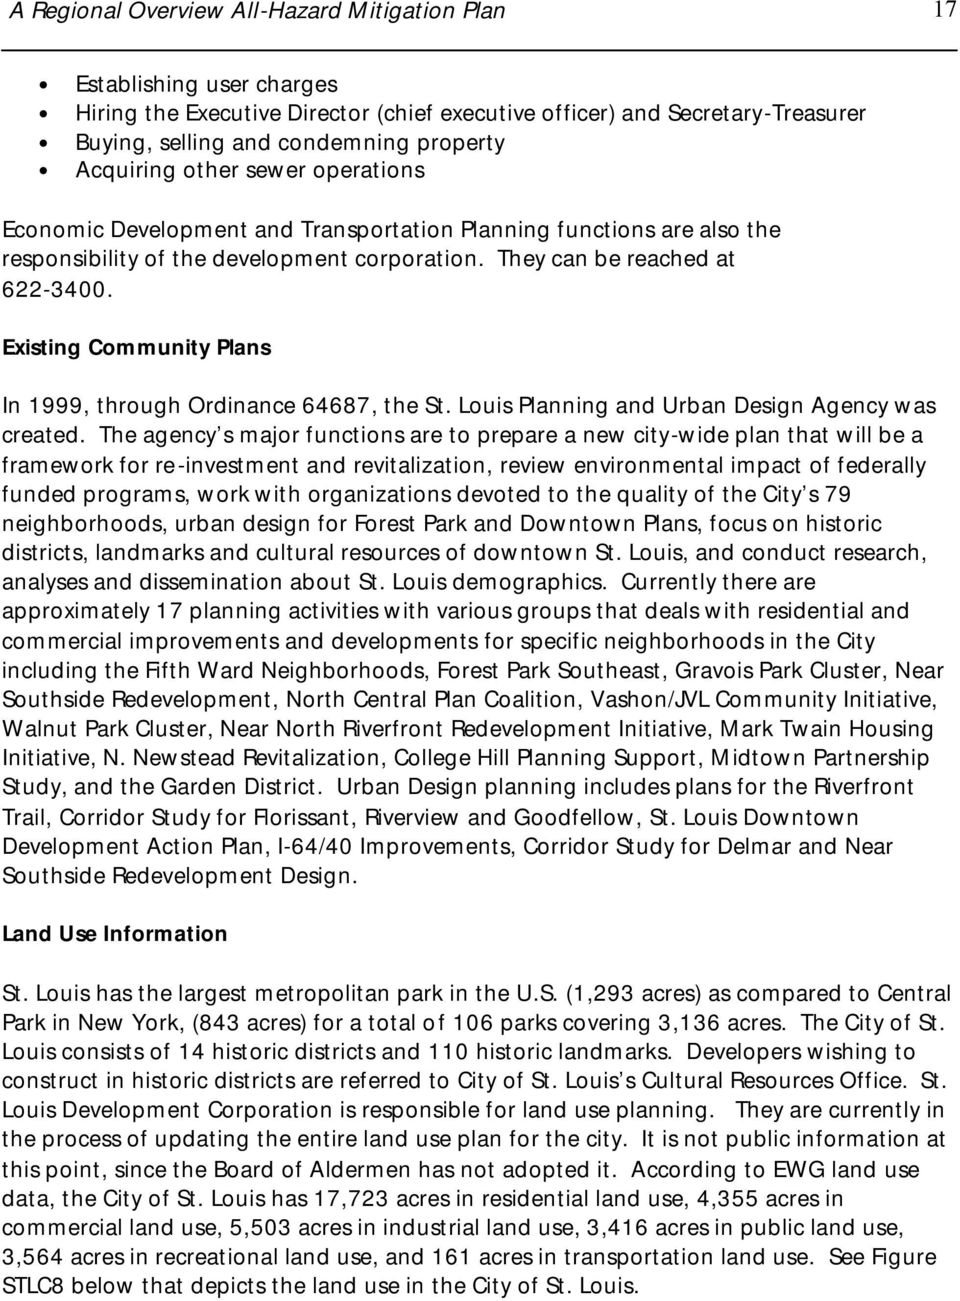 Existing Community Plans In 1999, through Ordinance 64687, the St. Louis Planning and Urban Design Agency was created.